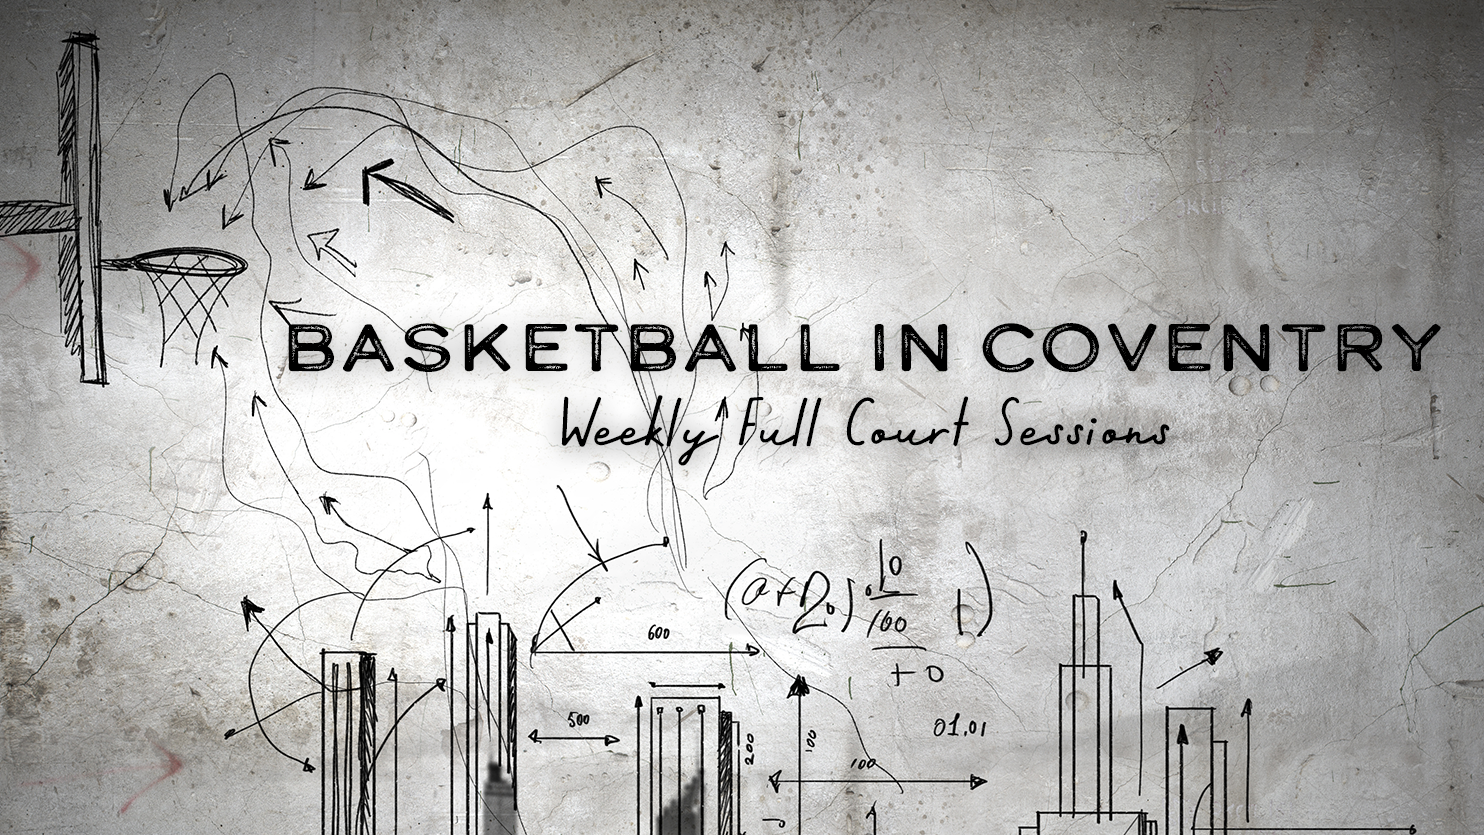 Basketball in Coventry